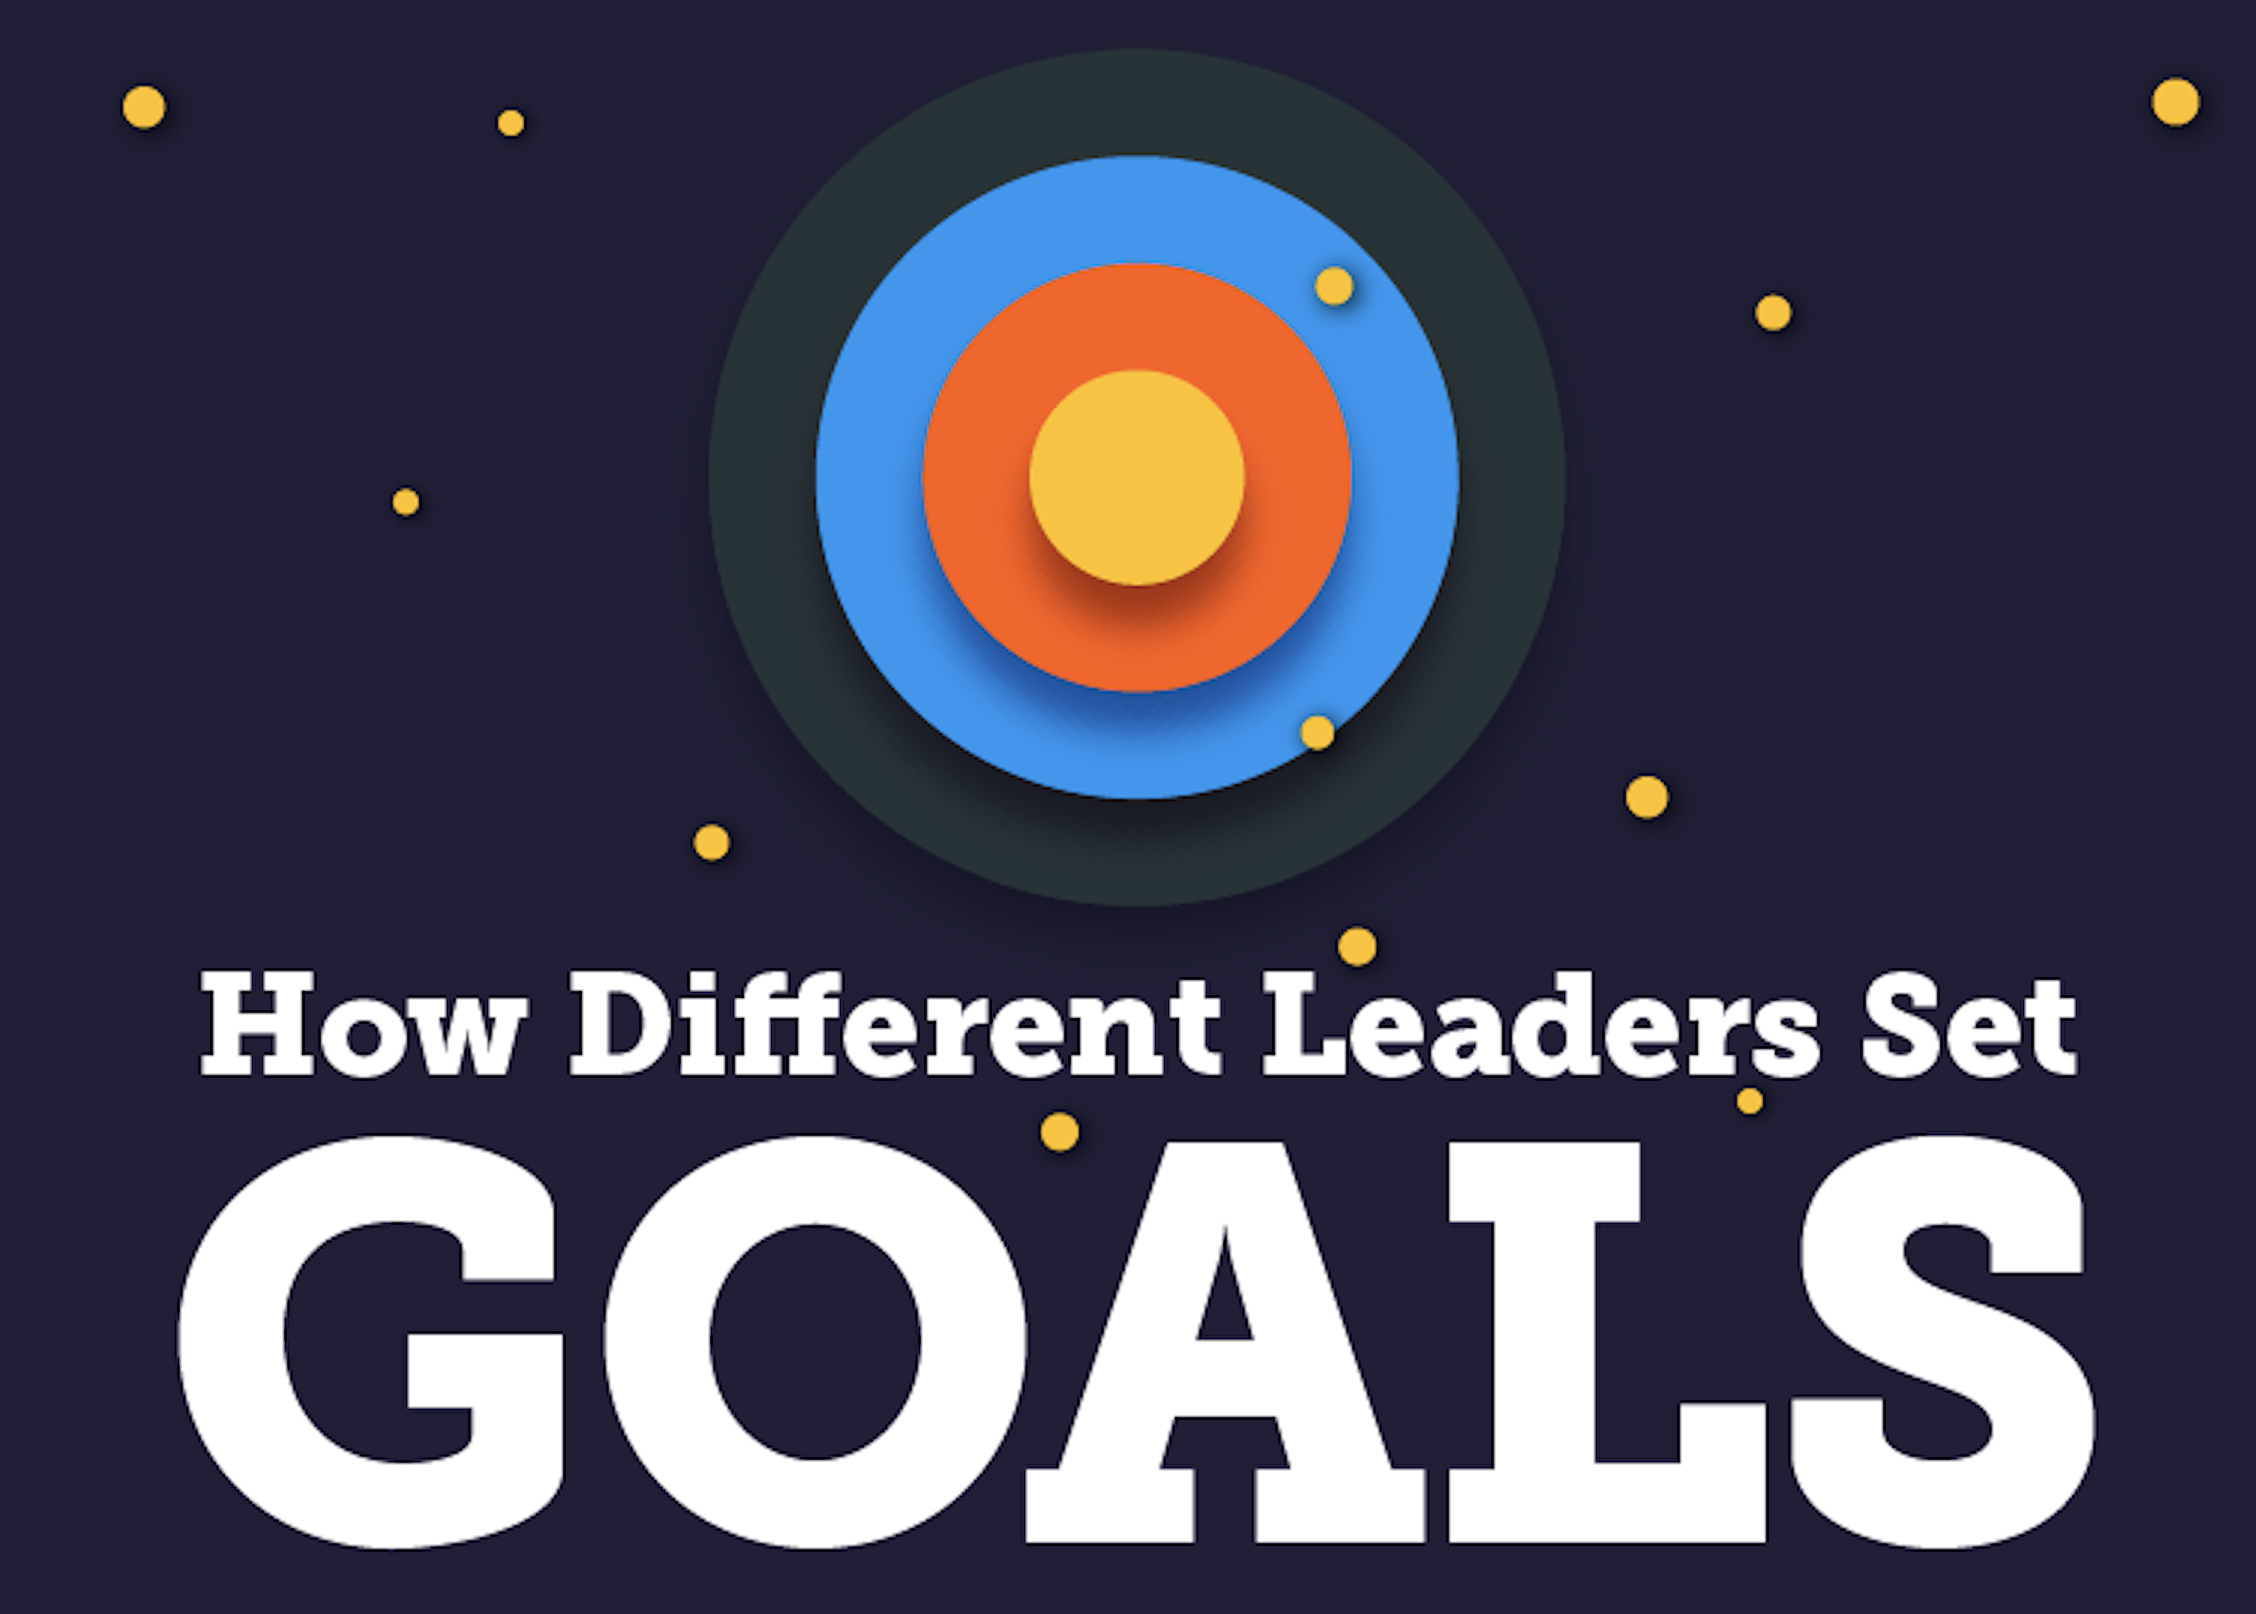 How Different Leaders, Like Trump, Elon Musk, Kennedy, Set Goals (Infographic)